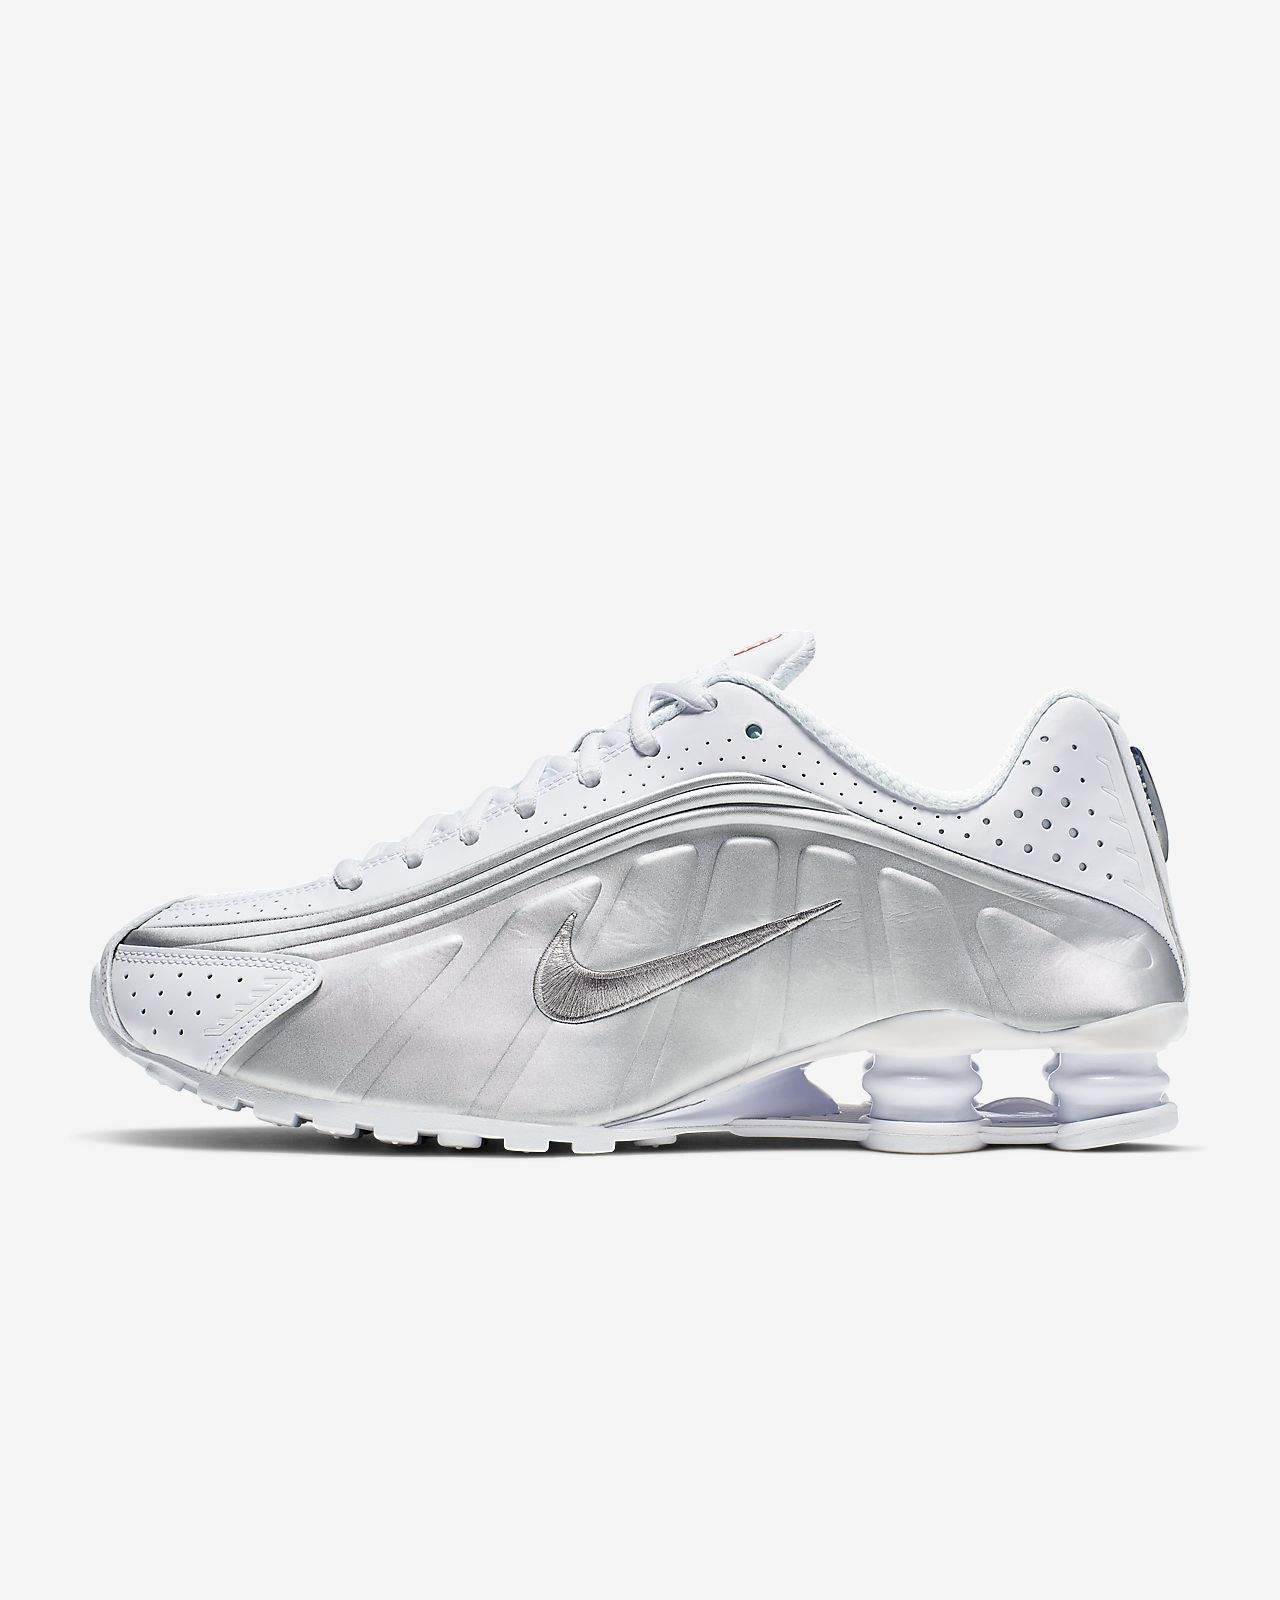 huge discount 4fa39 ec2c8 ... Nike Shox R4 Men s Shoe